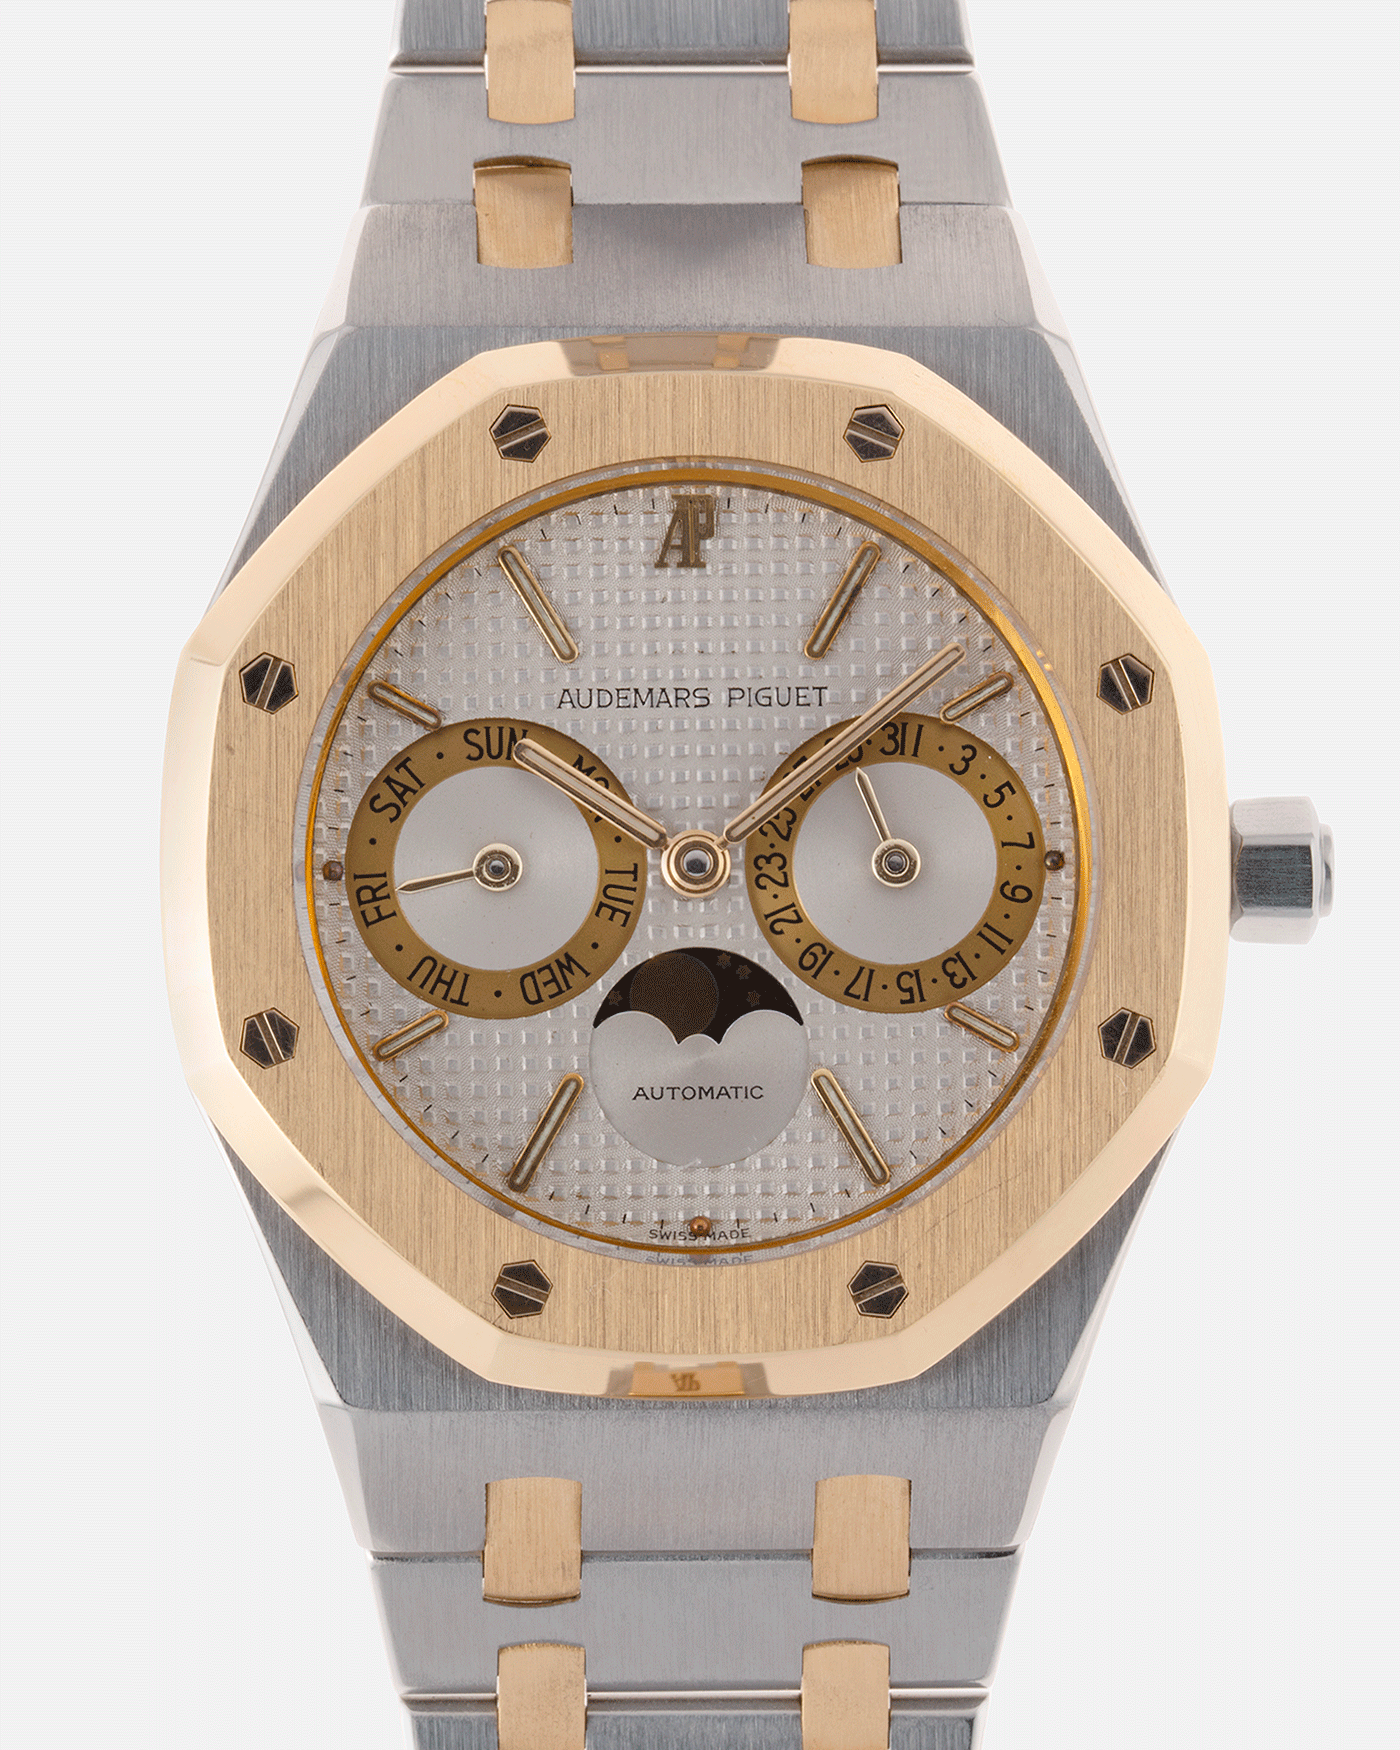 Brand: Audemars Piguet Year: 1980's Model: Royal Oak Reference Number: 25594 Material: Stainless Steel and 18k Yellow Gold Movement: Cal 2124 Case Diameter: 36mm Bracelet: Audemars Piguet Stainless Steel Integrated Bracelet